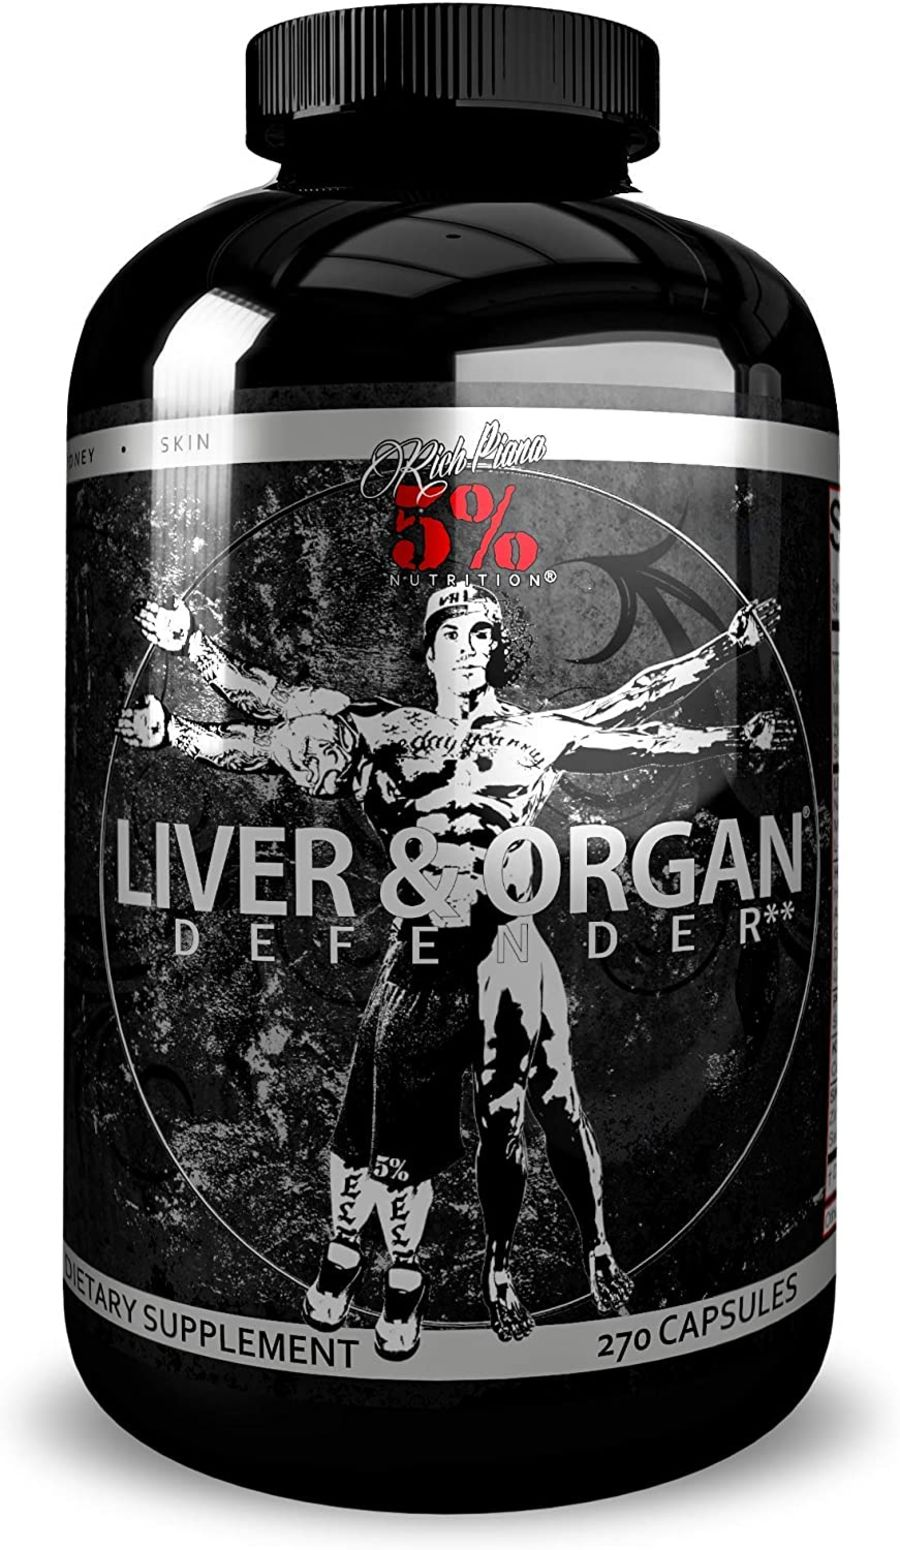 Liver & Organ Recovery 5% Nutrition